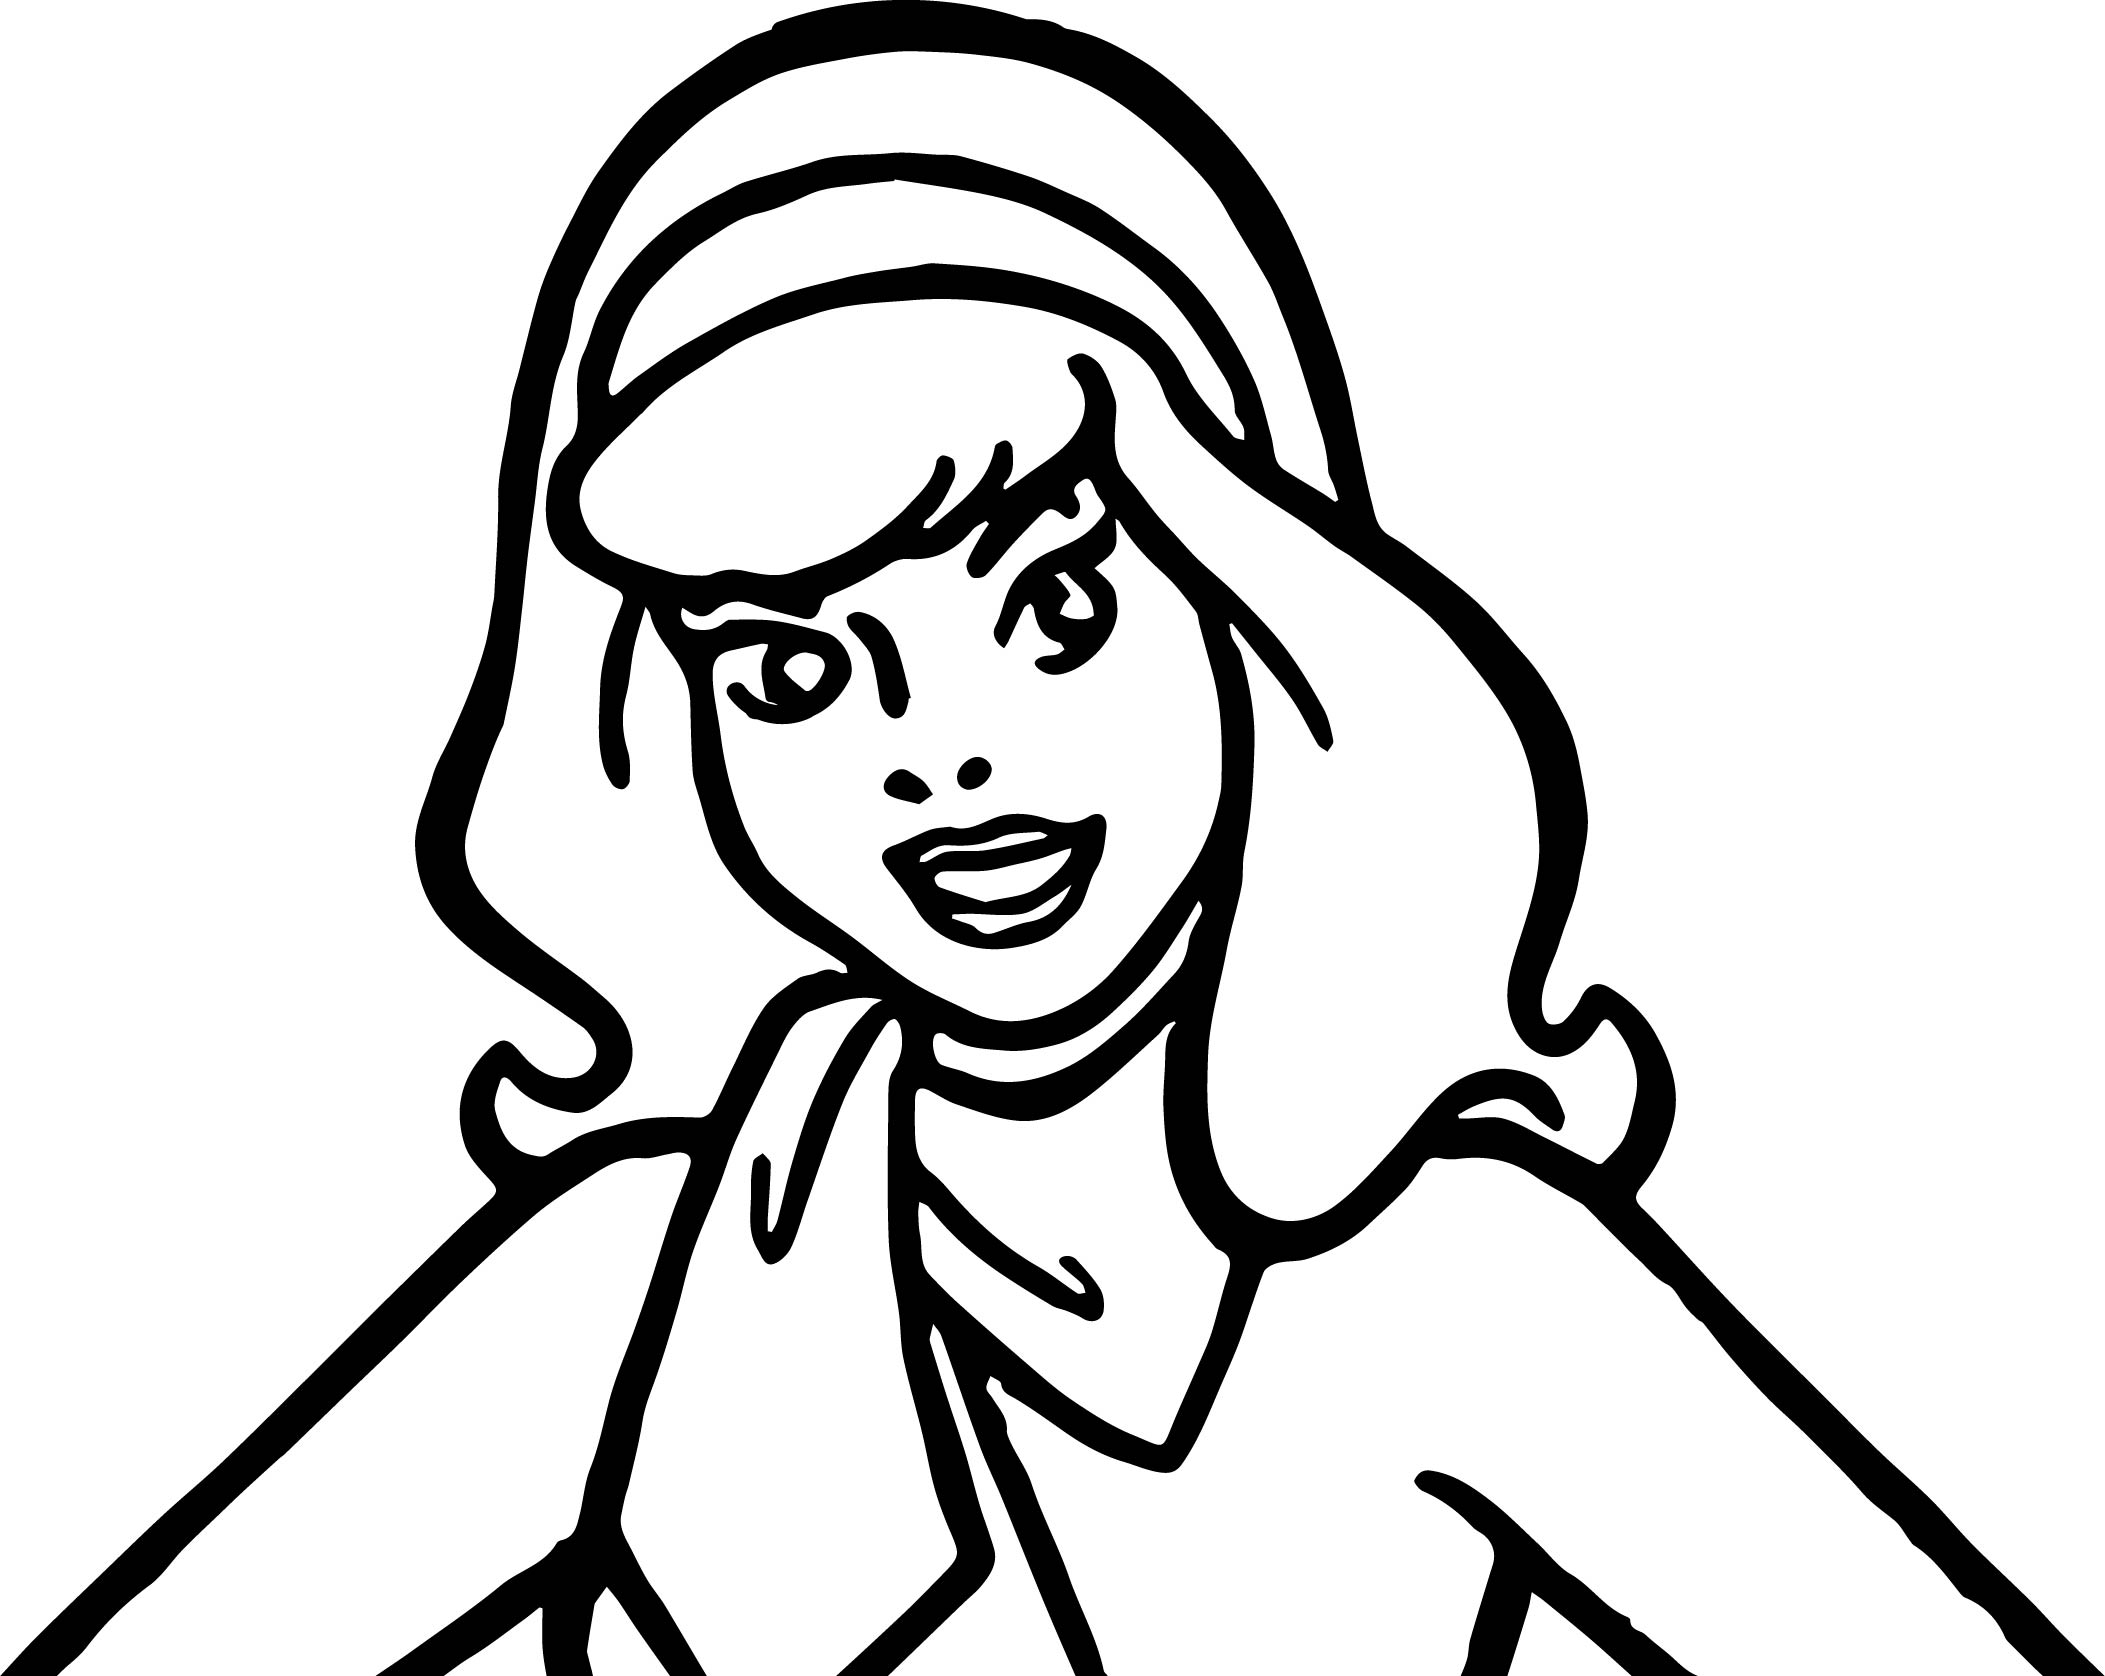 Daphne Scooby Doo Make Up Coloring Page | Wecoloringpage.com